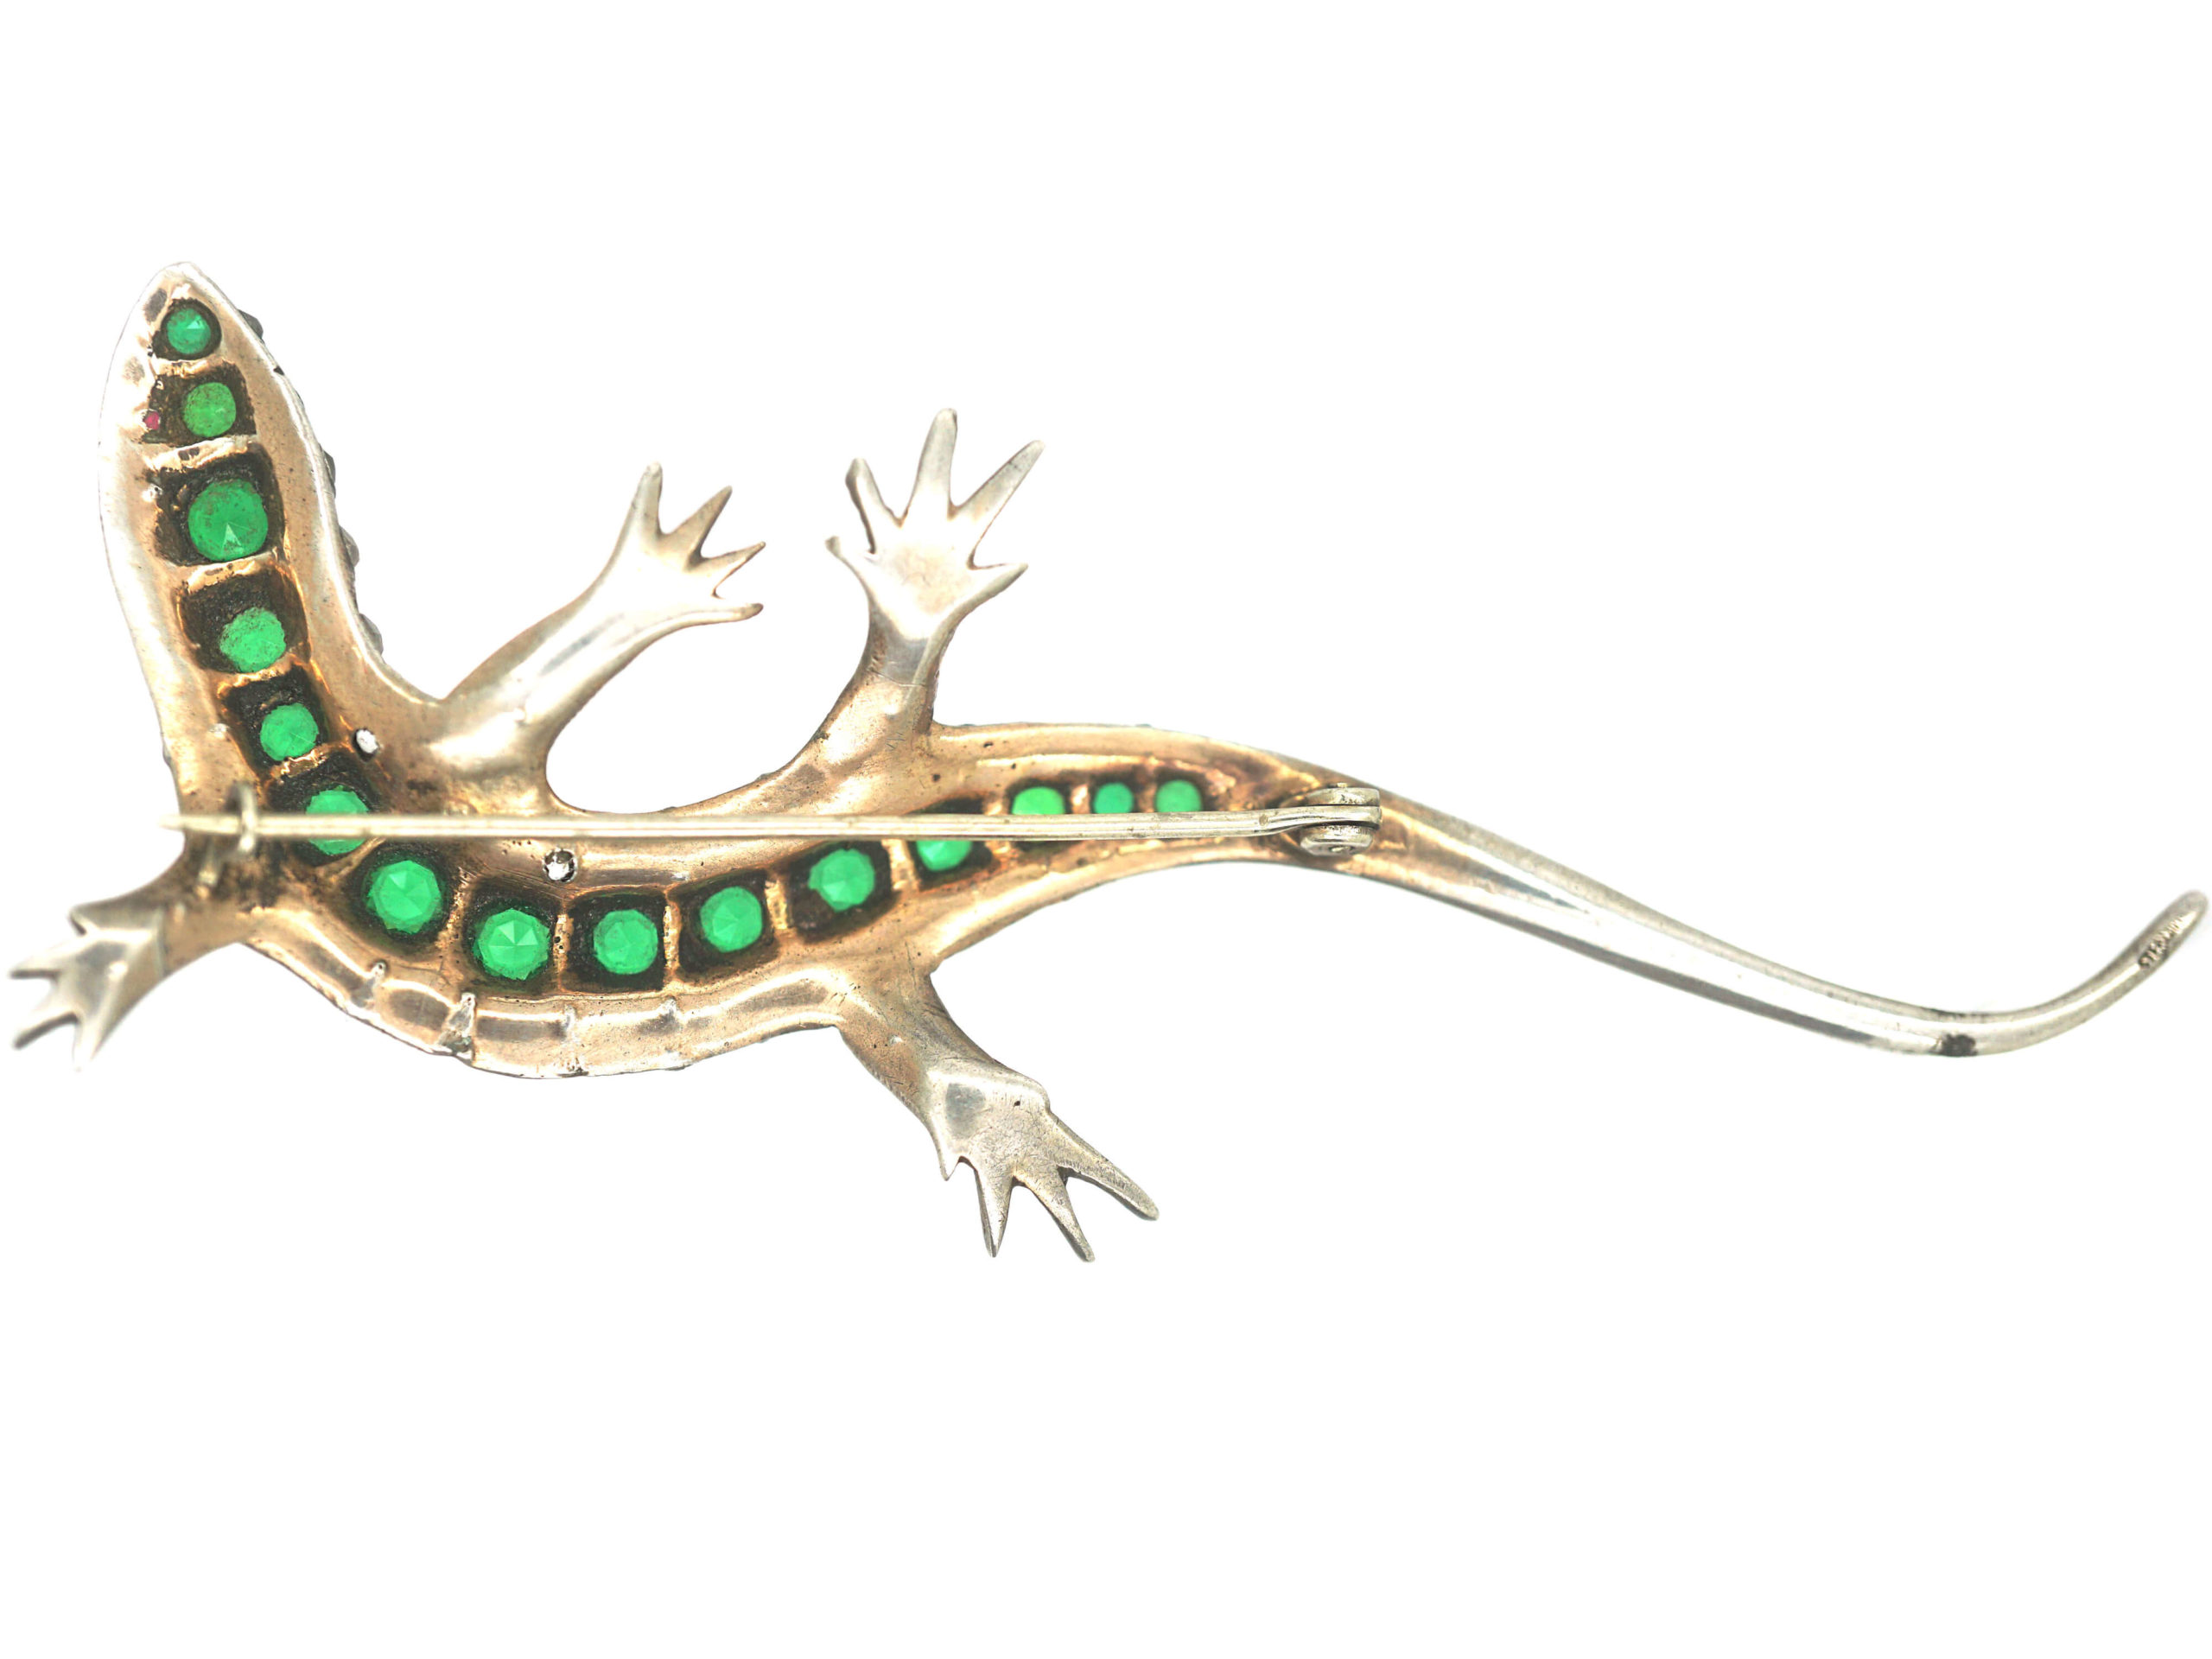 Art Deco Large Silver, Green, White & Red Paste Brooch of a Lizard